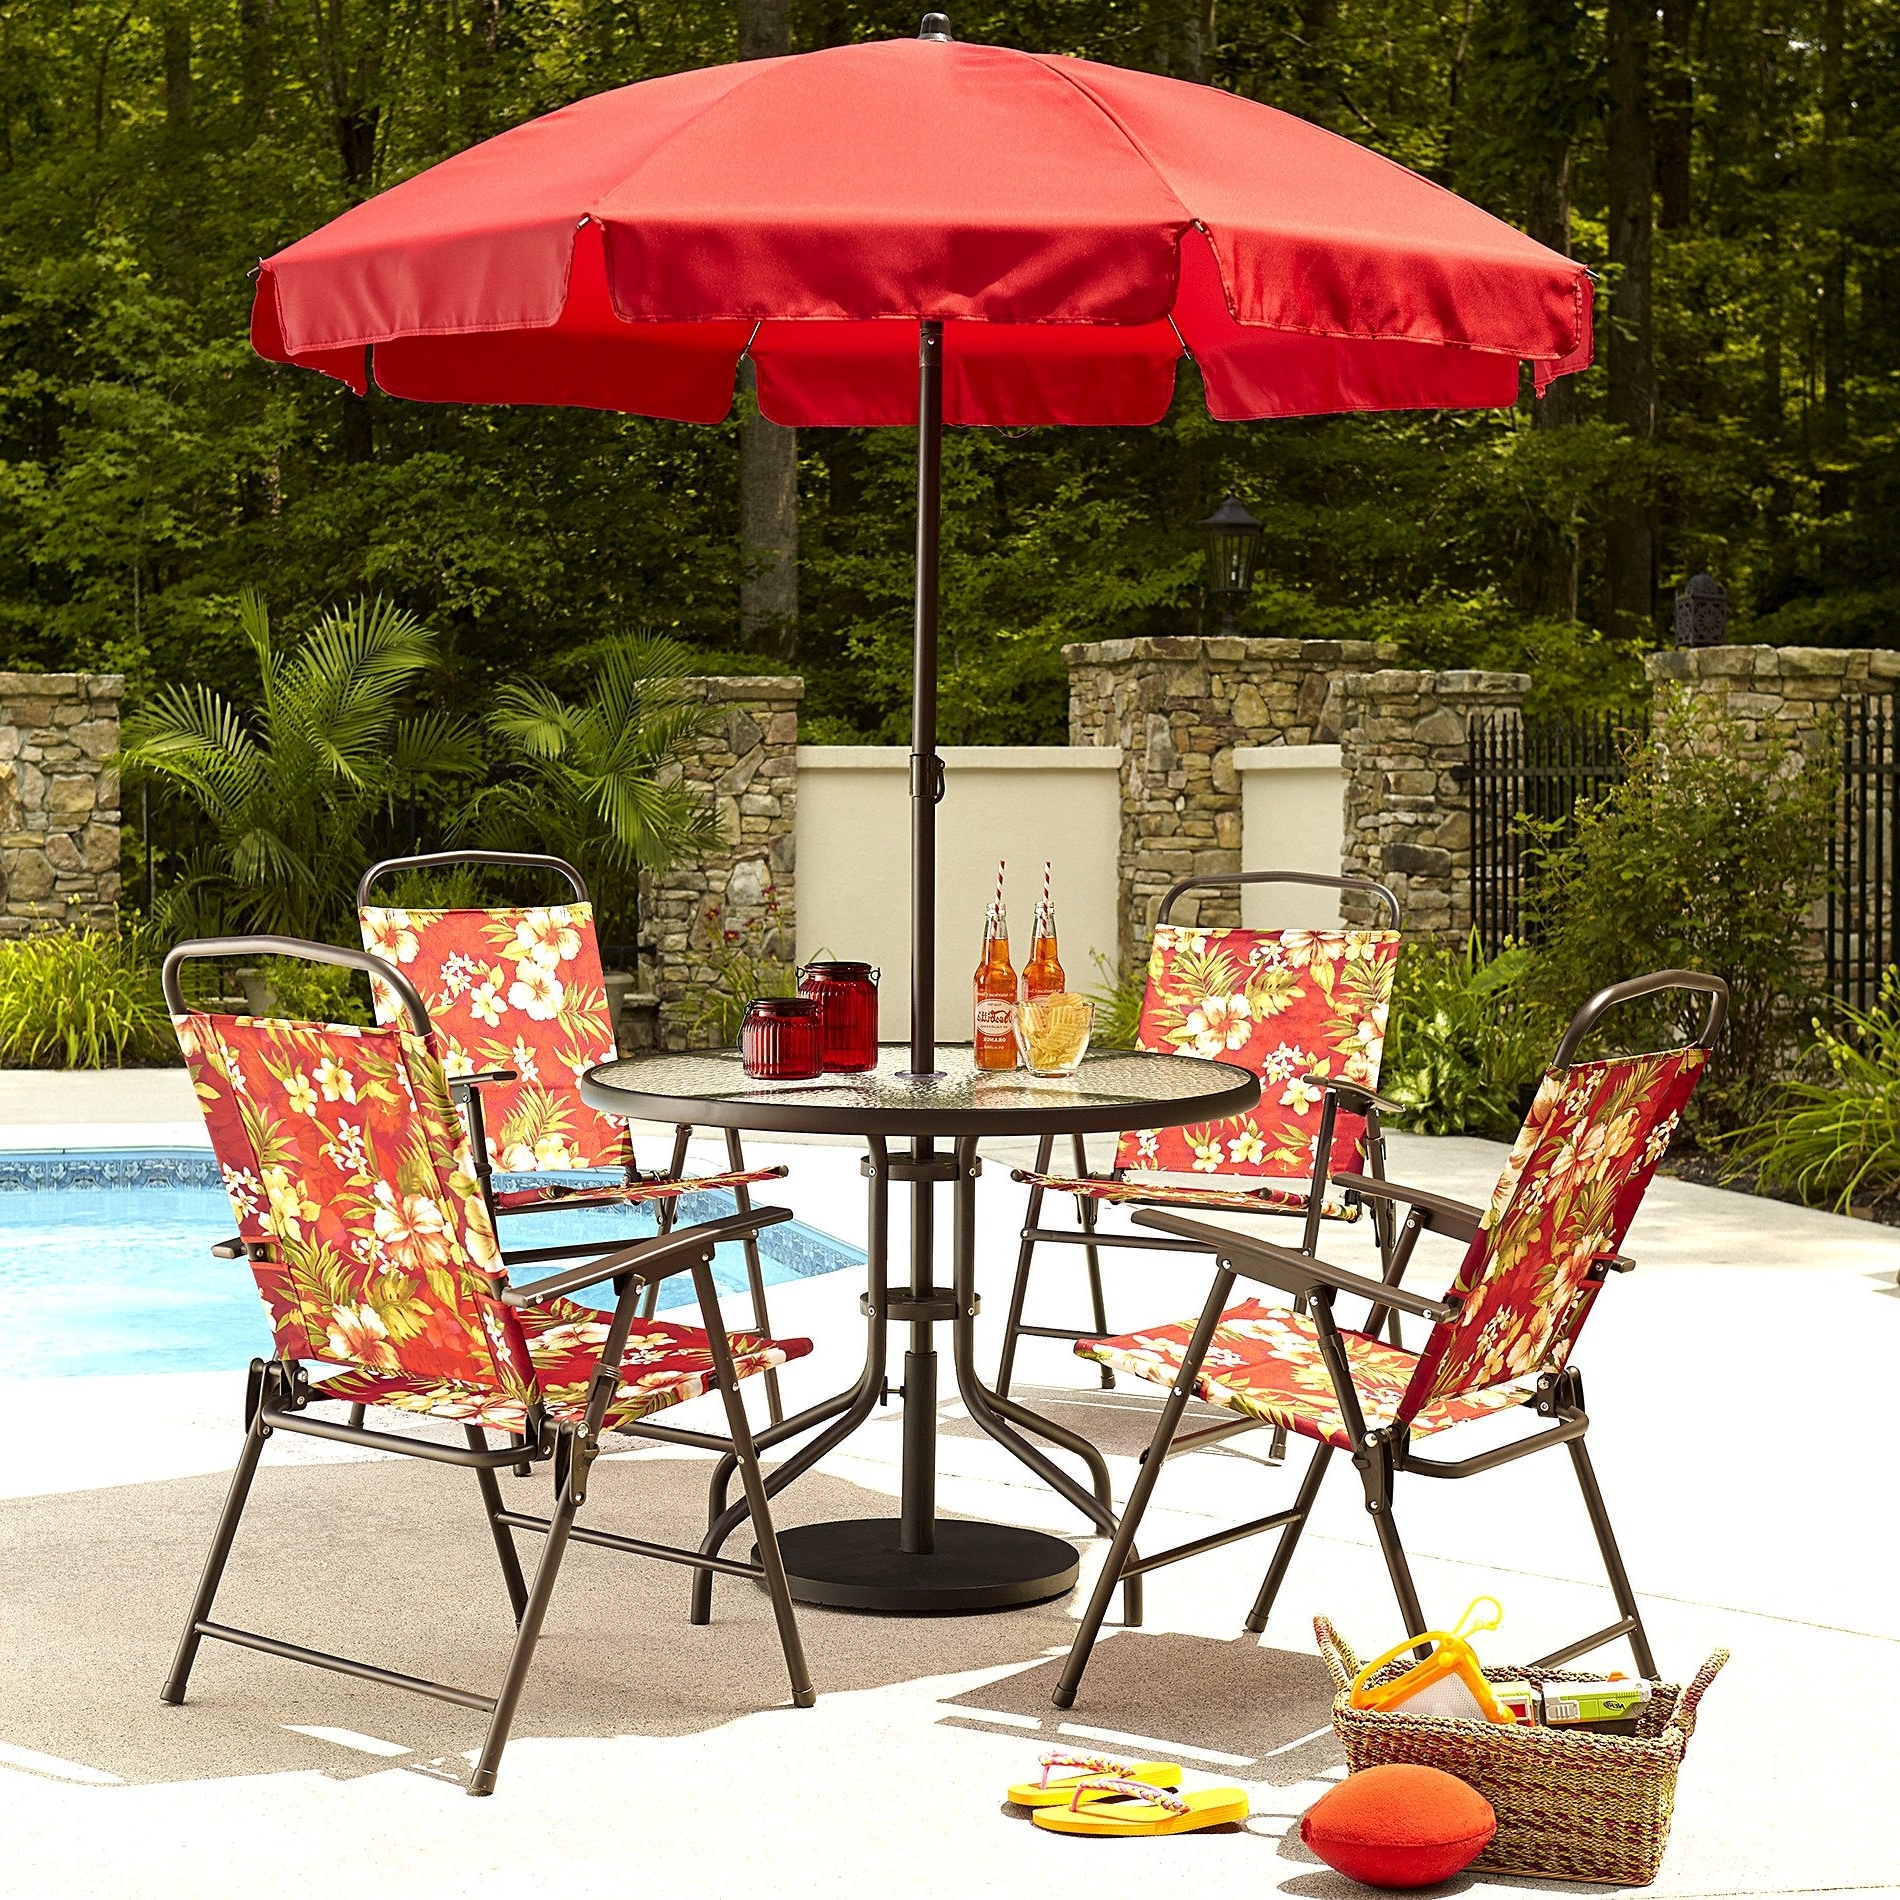 Best And Newest Patio Table Sets With Umbrellas Inside 25 Inspirational Patio Table Chairs Umbrella Design Of Outdoor Patio (Gallery 20 of 20)